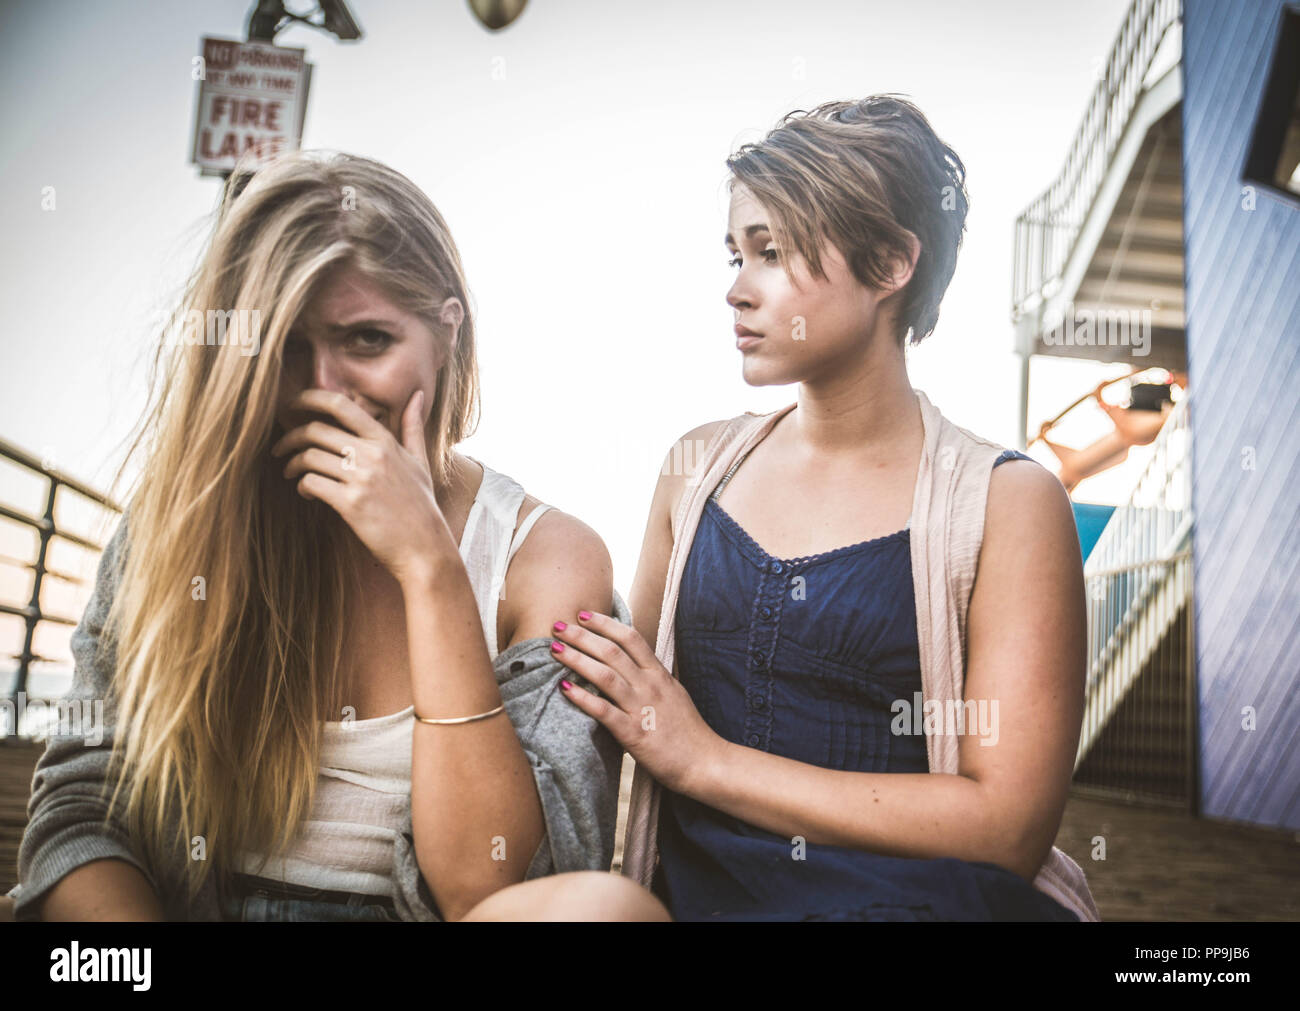 Young woman is sad crying and being consoled by friend - Stock Image